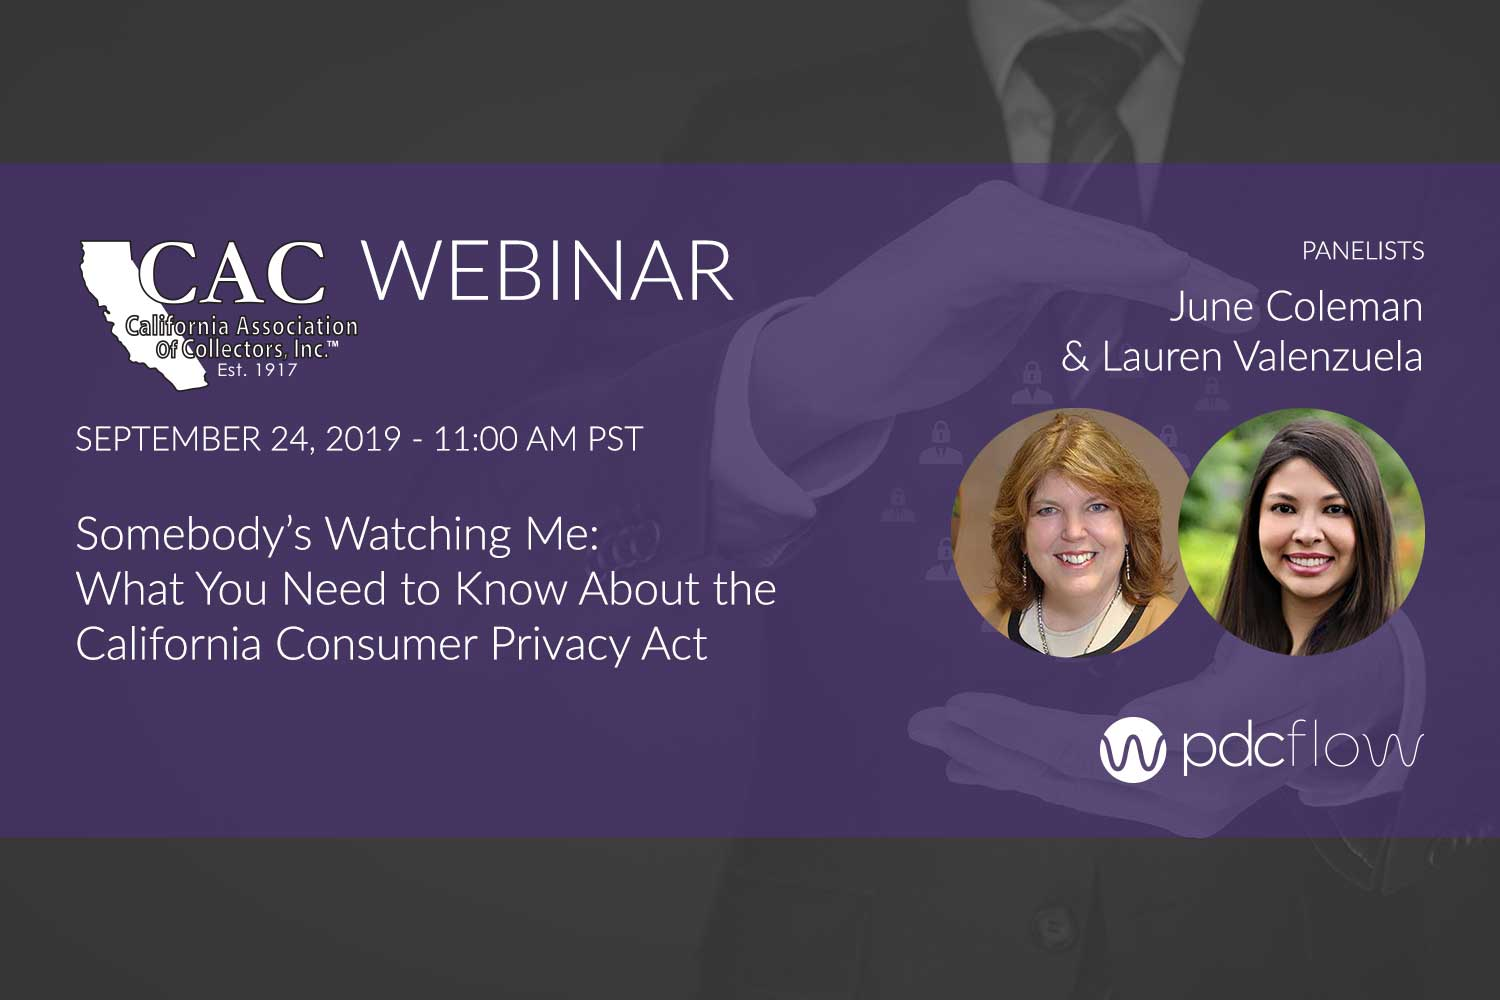 CAC Webinar: California Consumer Privacy Act